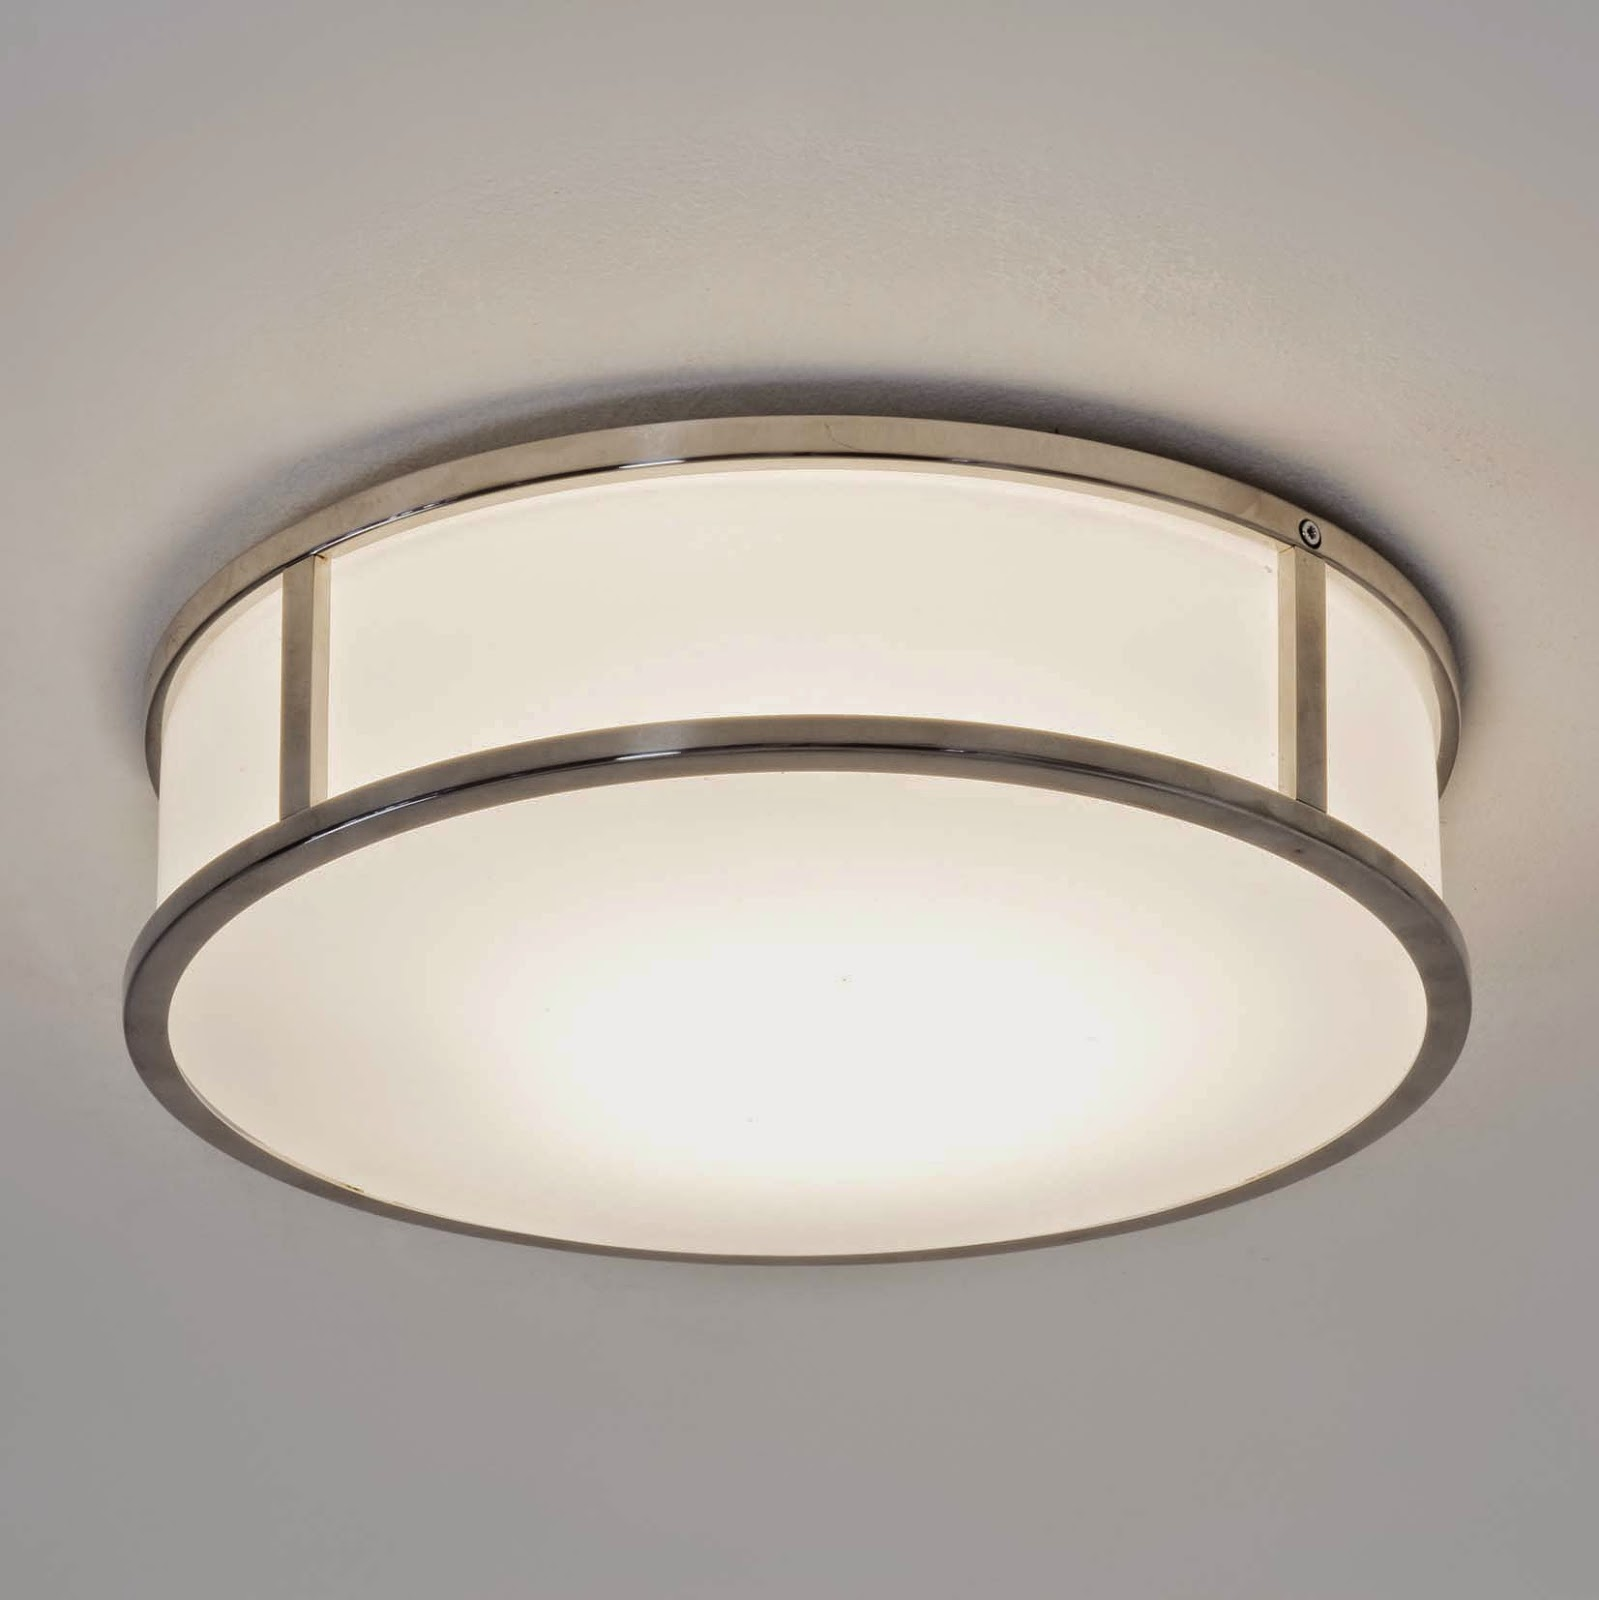 bathroom ceiling light